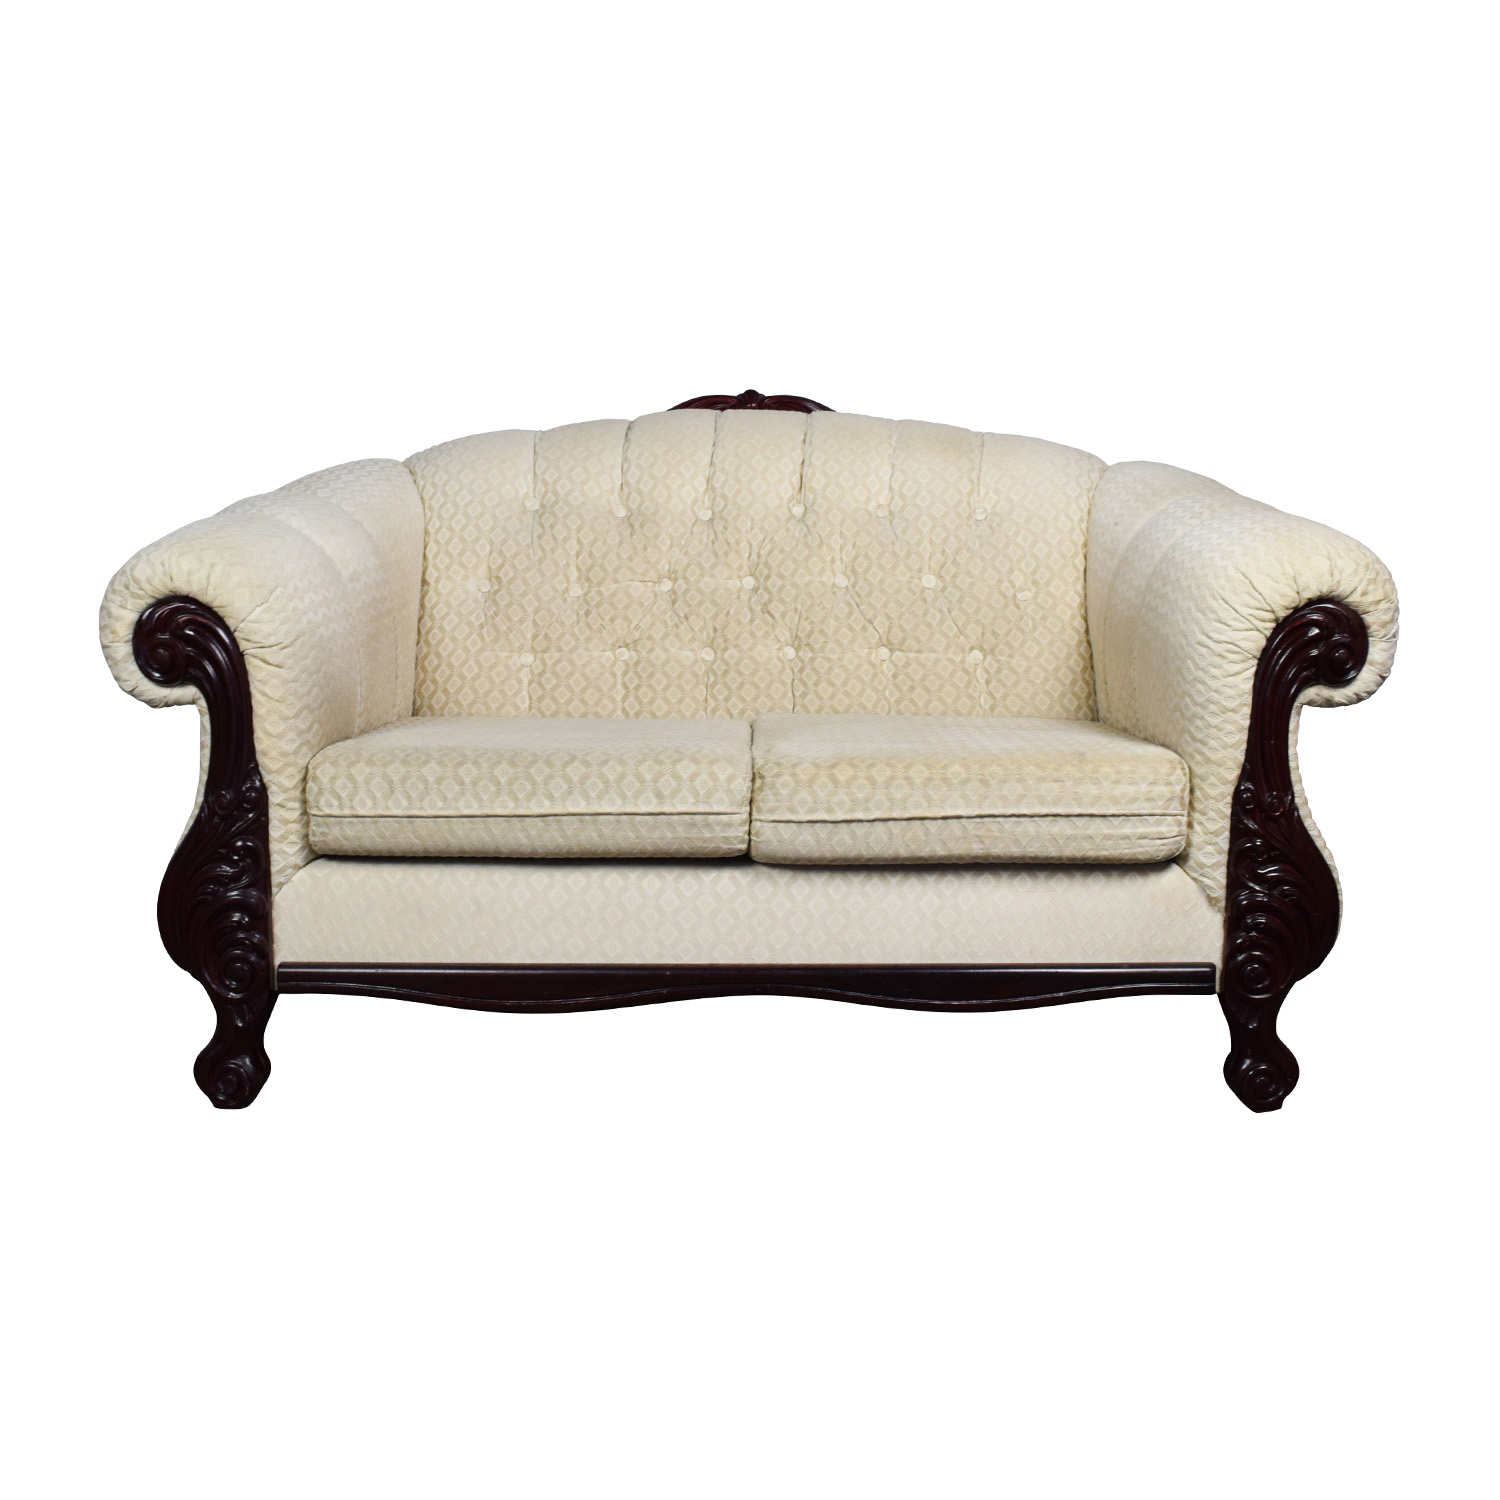 Beige Love Seat with Carved Mahogany Wood Base on sale